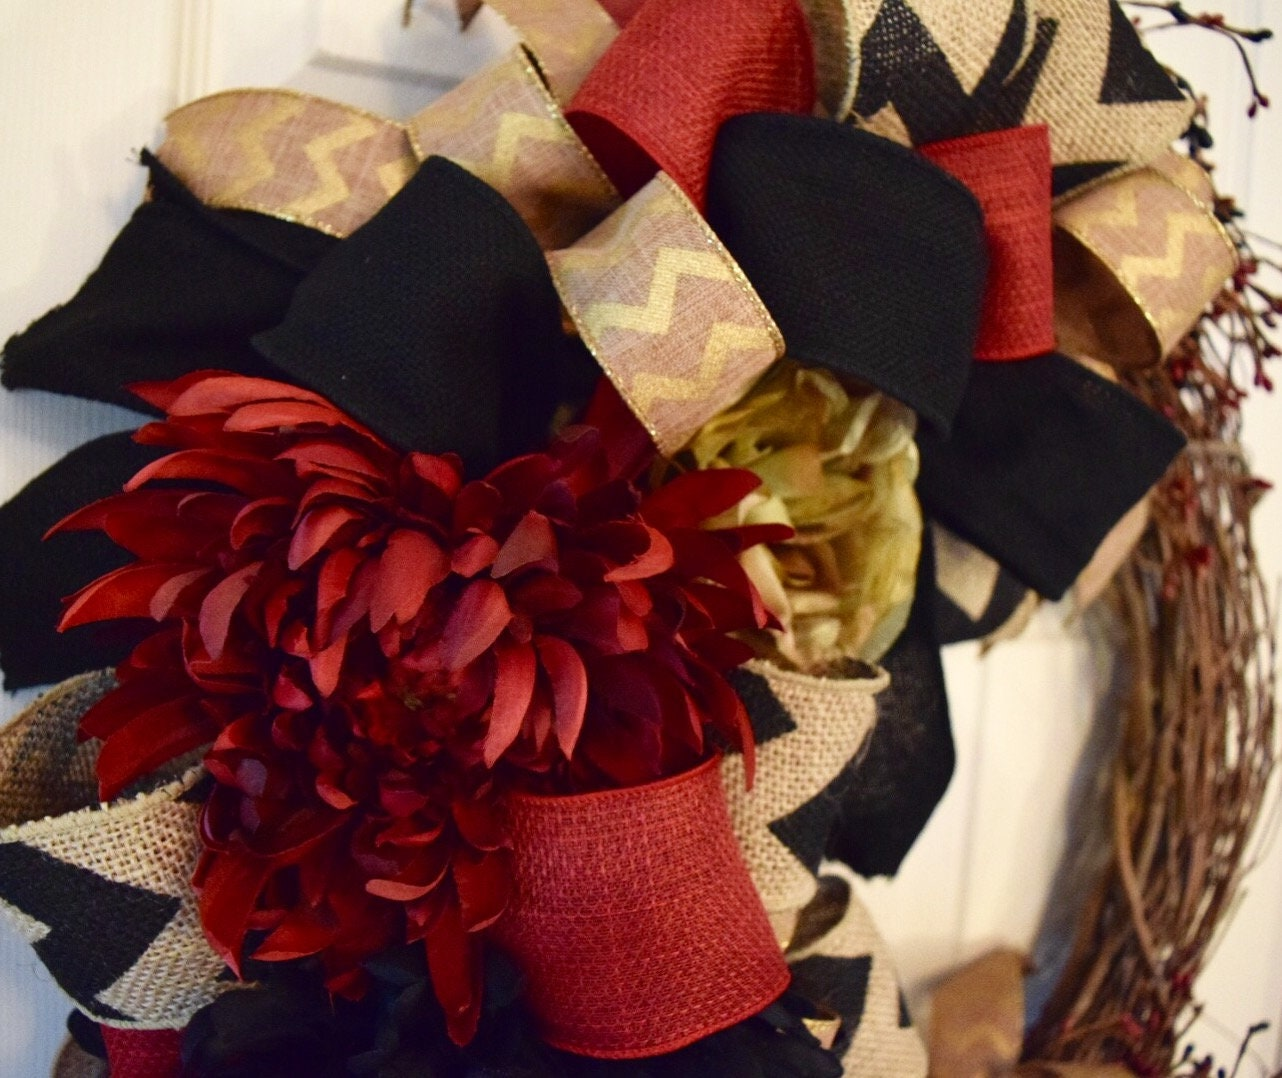 Salzburg Creations Burgundy And Rose Gold Fireworks: Grapevine Wreath With Burgundy, Black And Gold Ribbons And